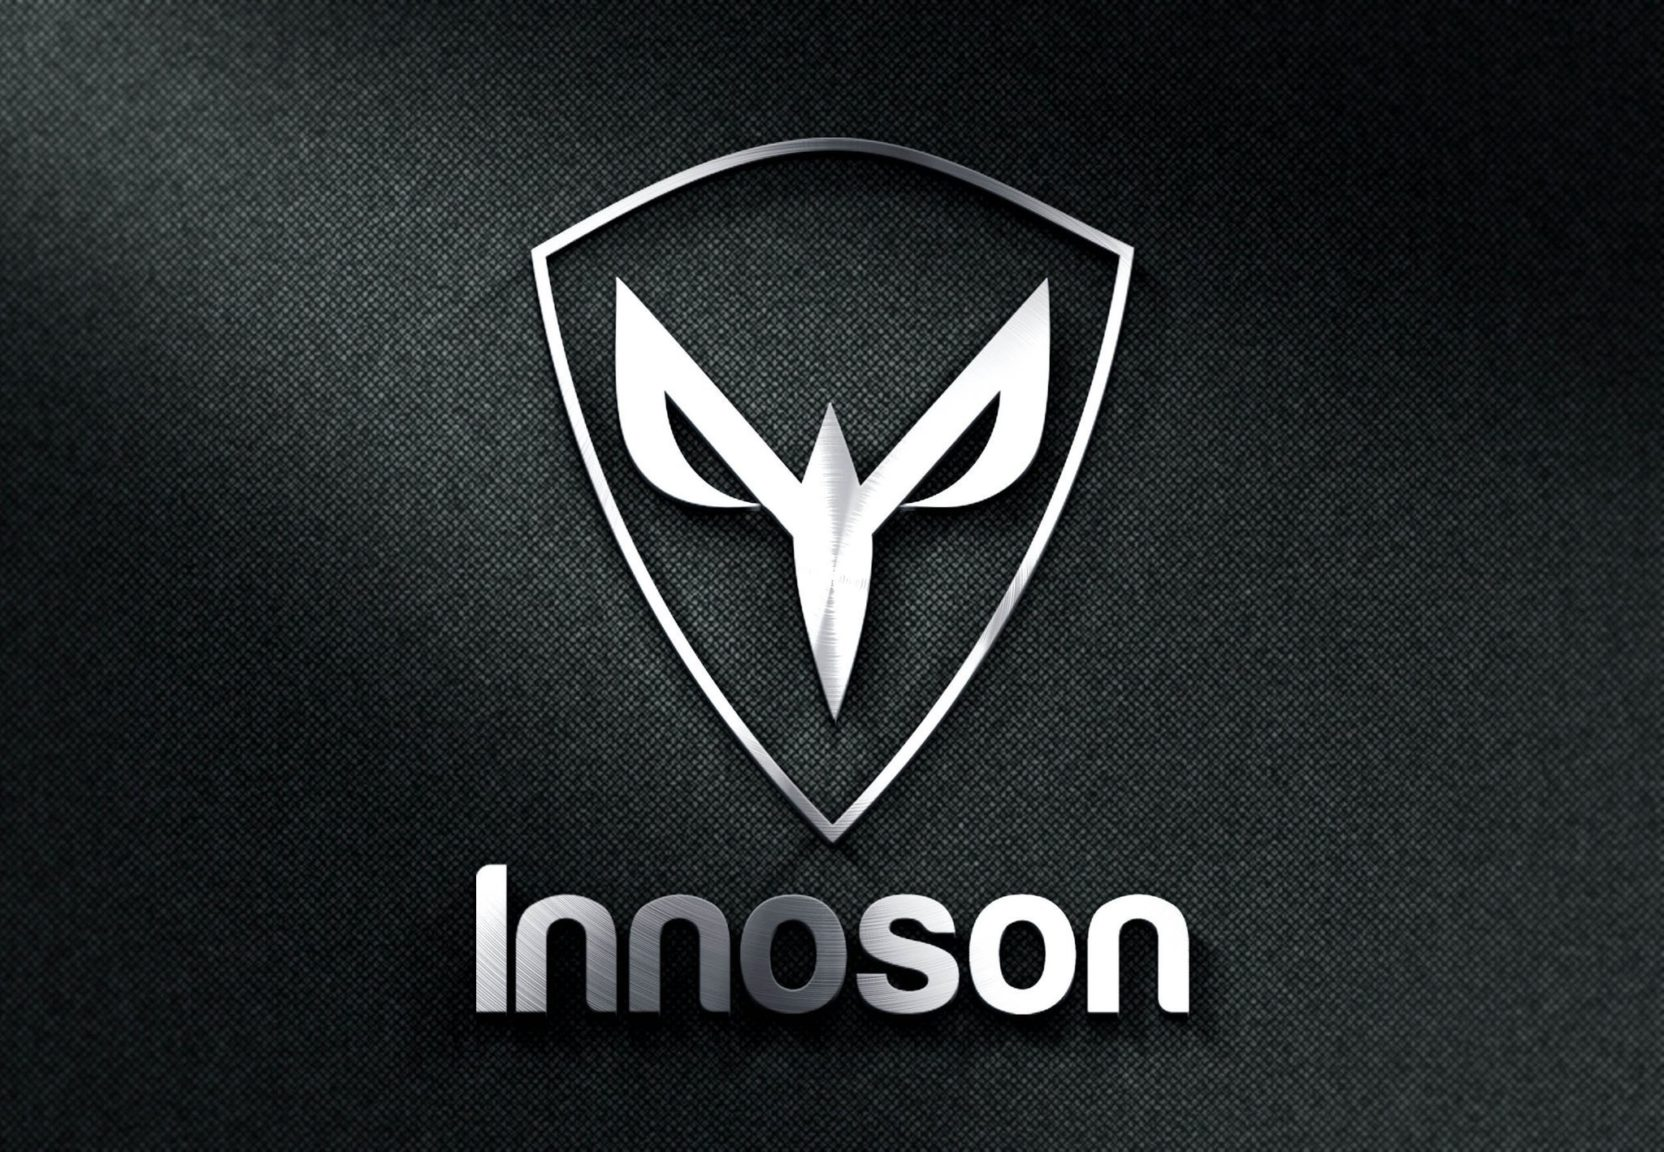 Undergraduate who redesigned Innoson Motors logo says he is 'Happy and Overwhelmed' | The Guardian Nigeria News - Nigeria and World News